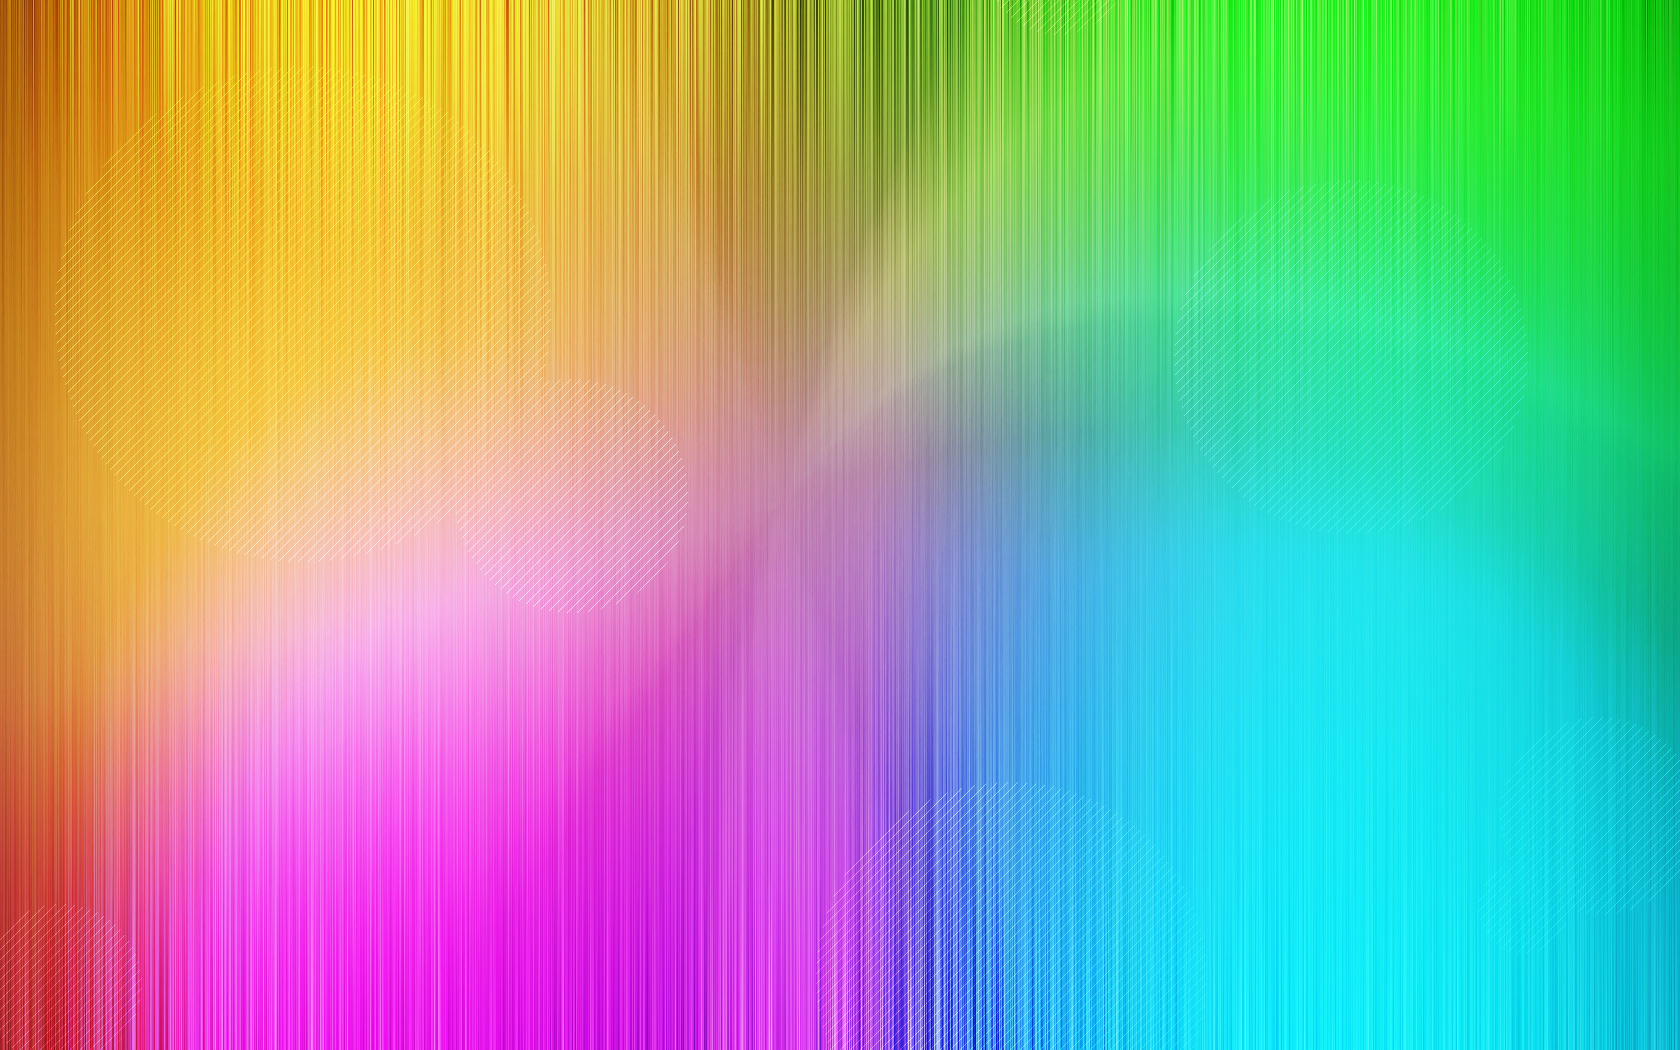 Colors Computer Wallpapers Desktop Backgrounds 1680x1050